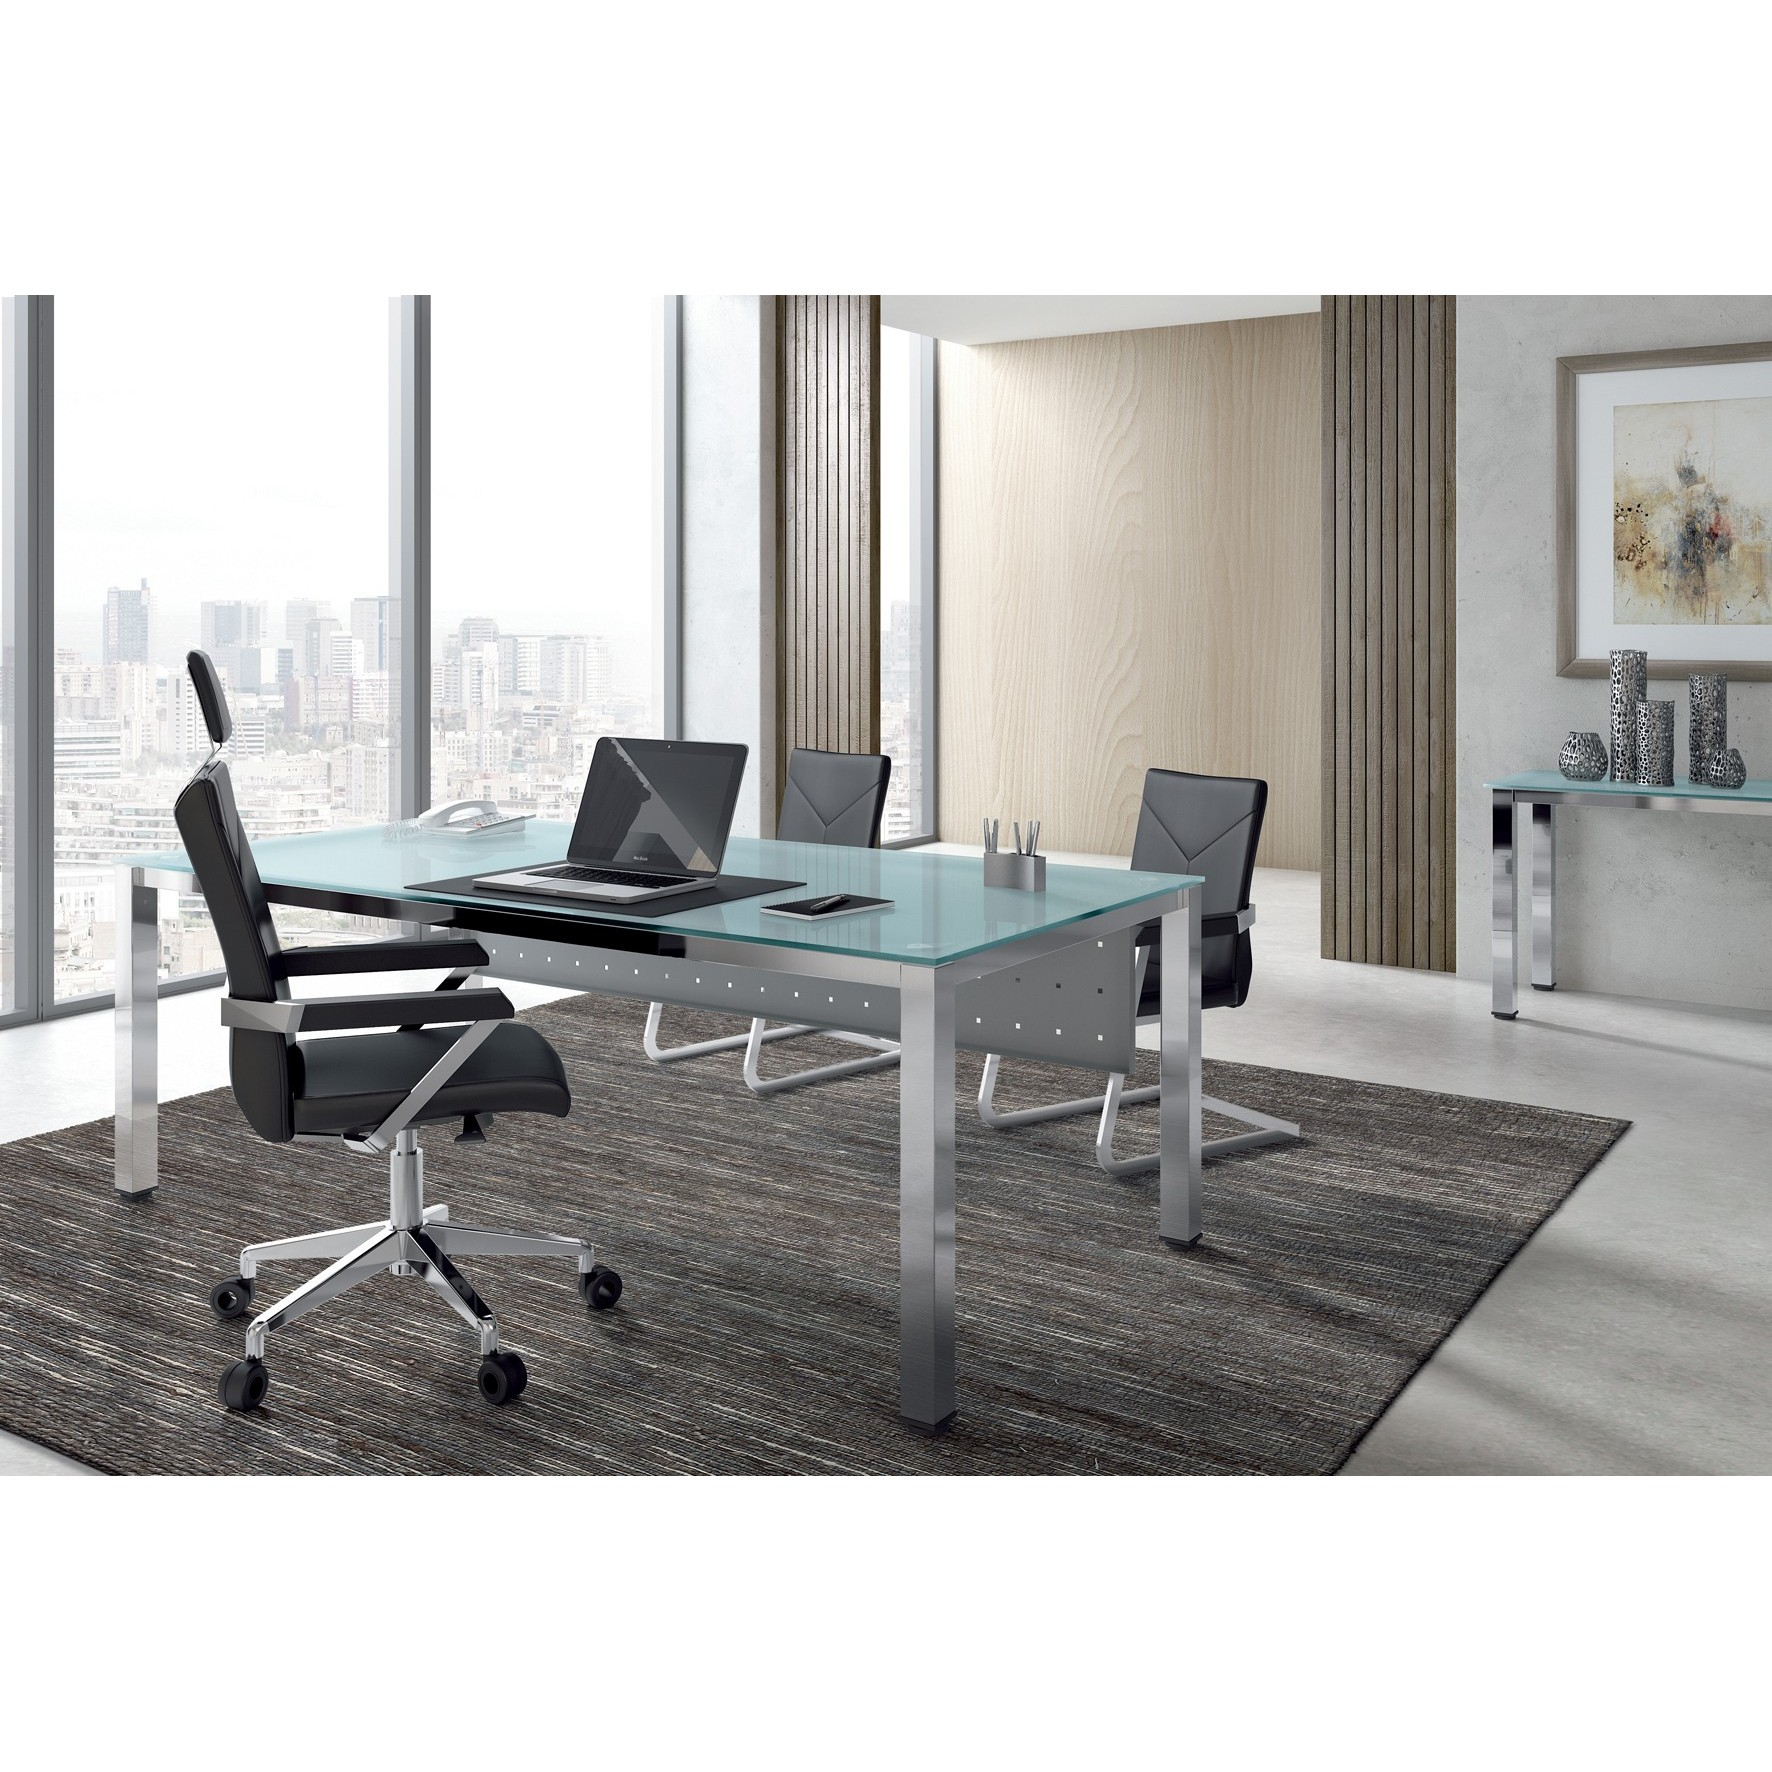 TABLE OFFICE 'S EXECUTIVE SERIES 160X80 ALUMINUM/CRYSTAL